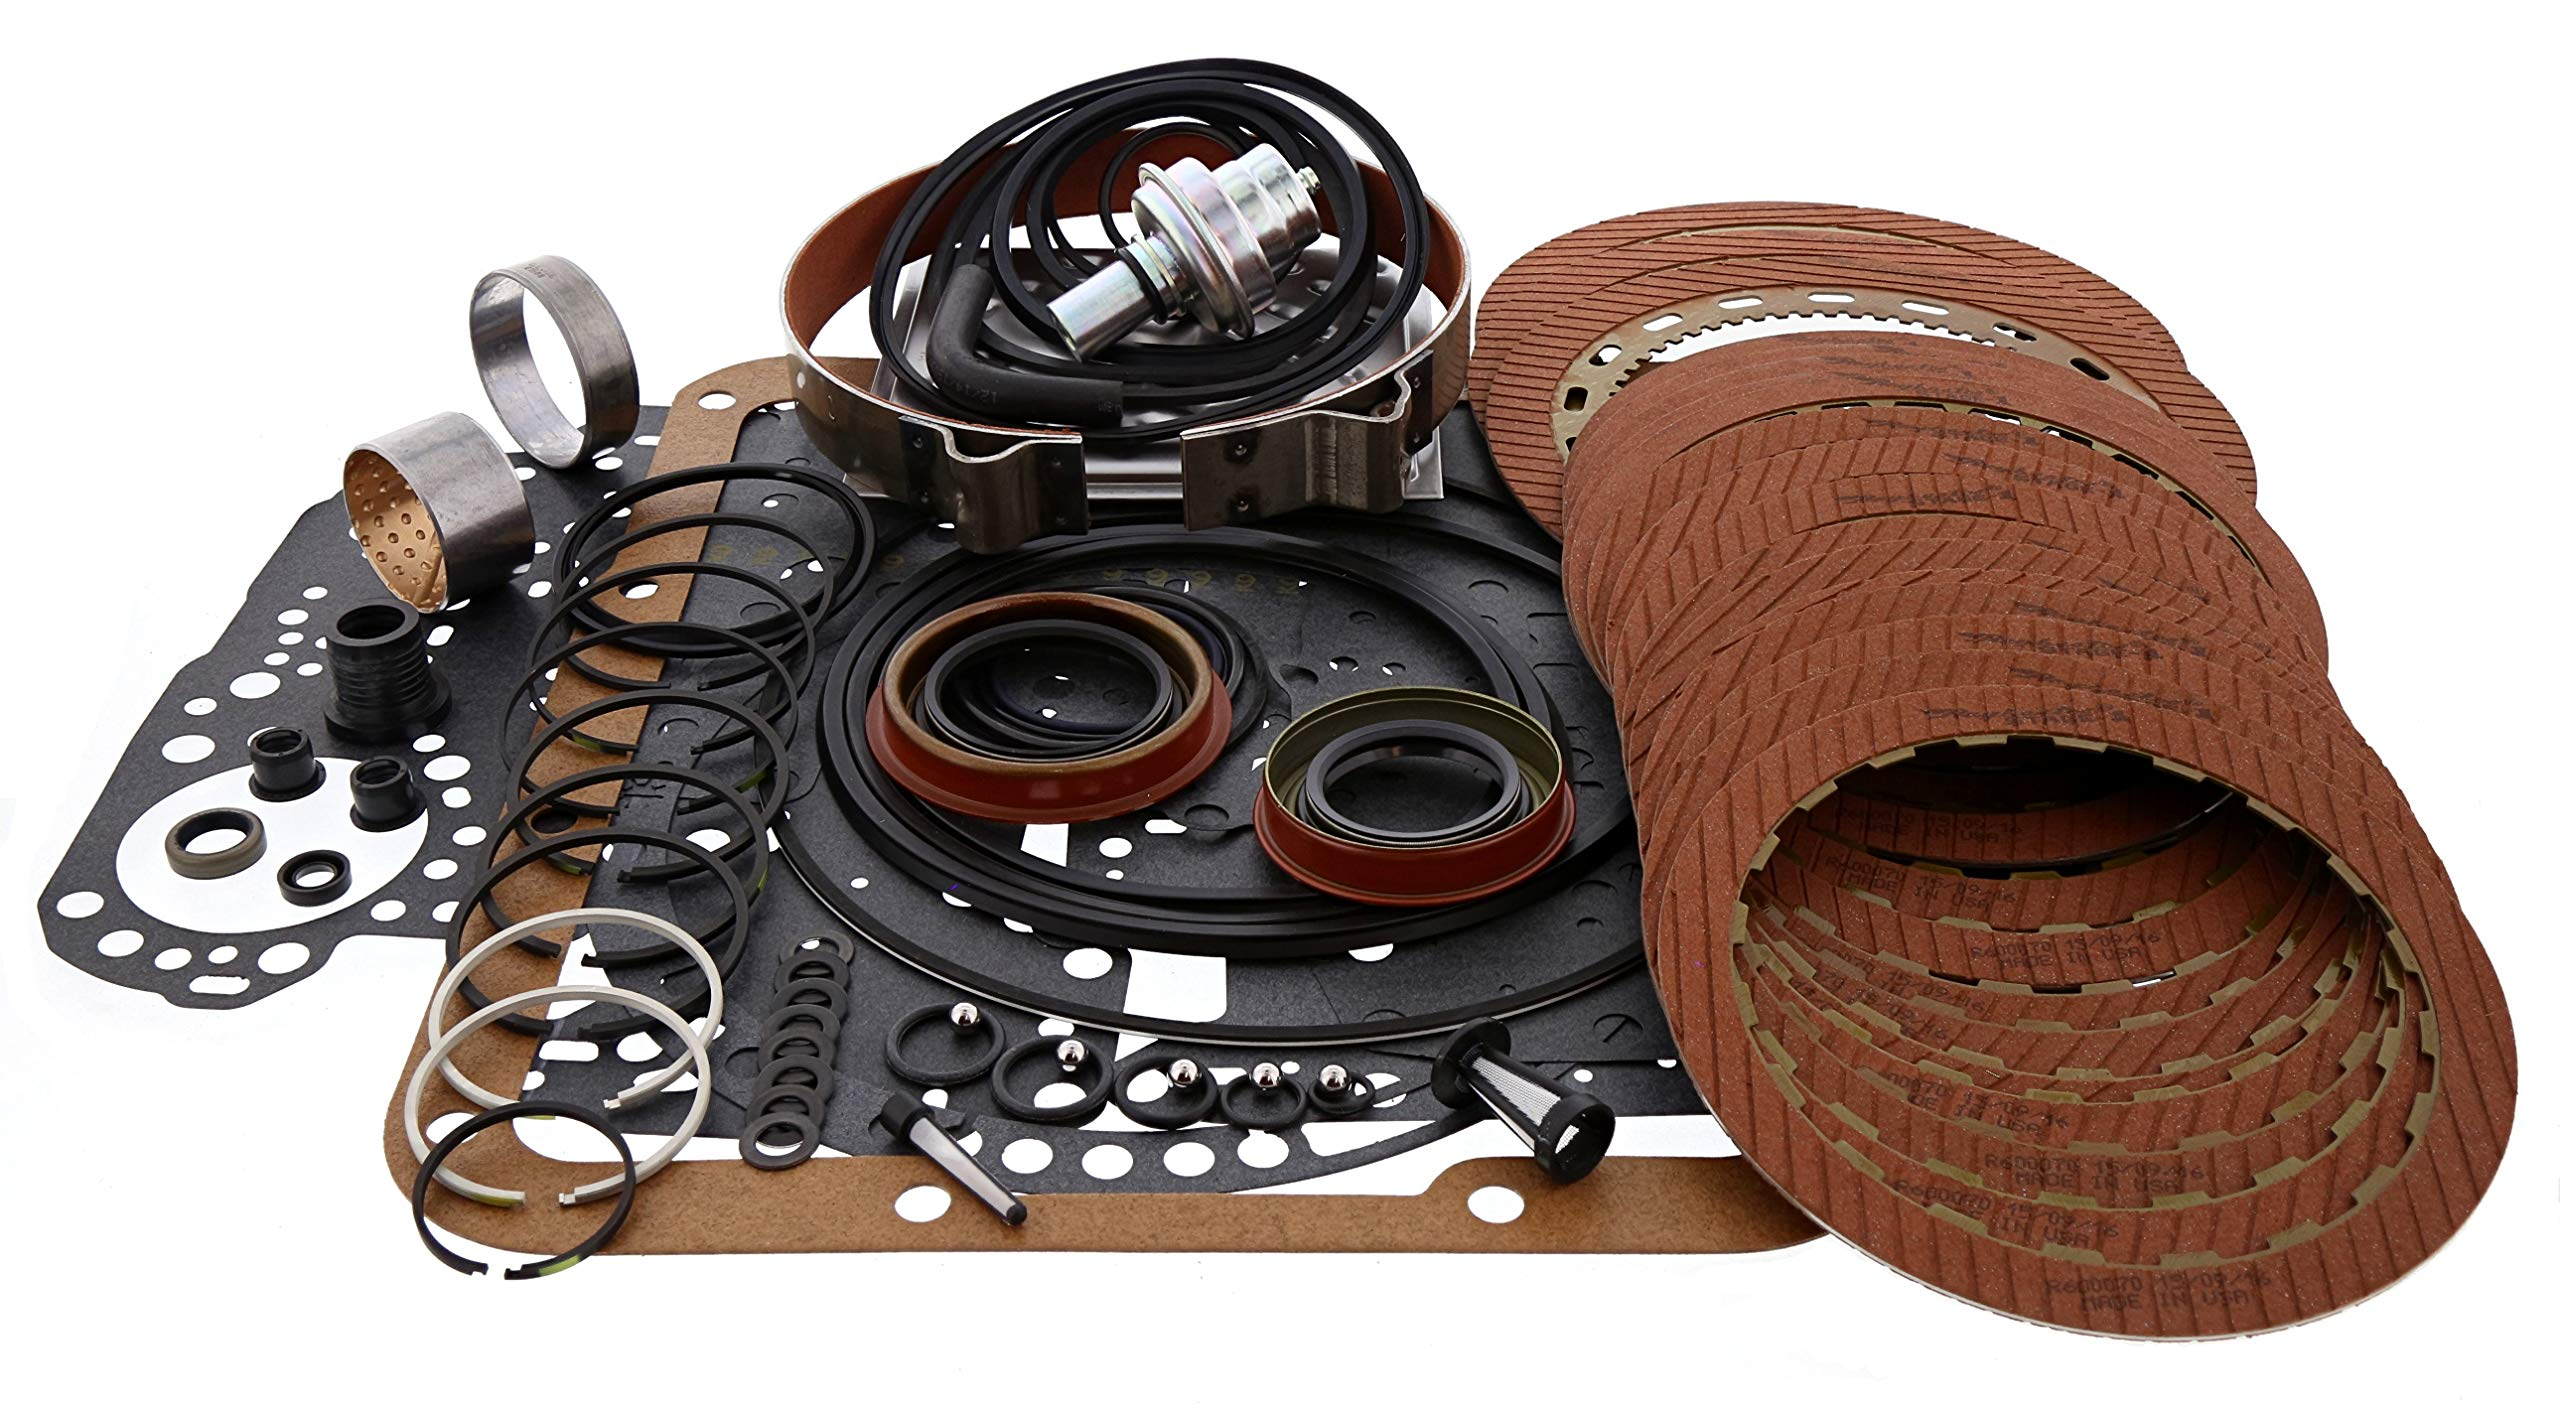 TH350 Turbo 350 Transmission Raybestos Stage 1 Red Less Steel Level 2 Rebuild Kit